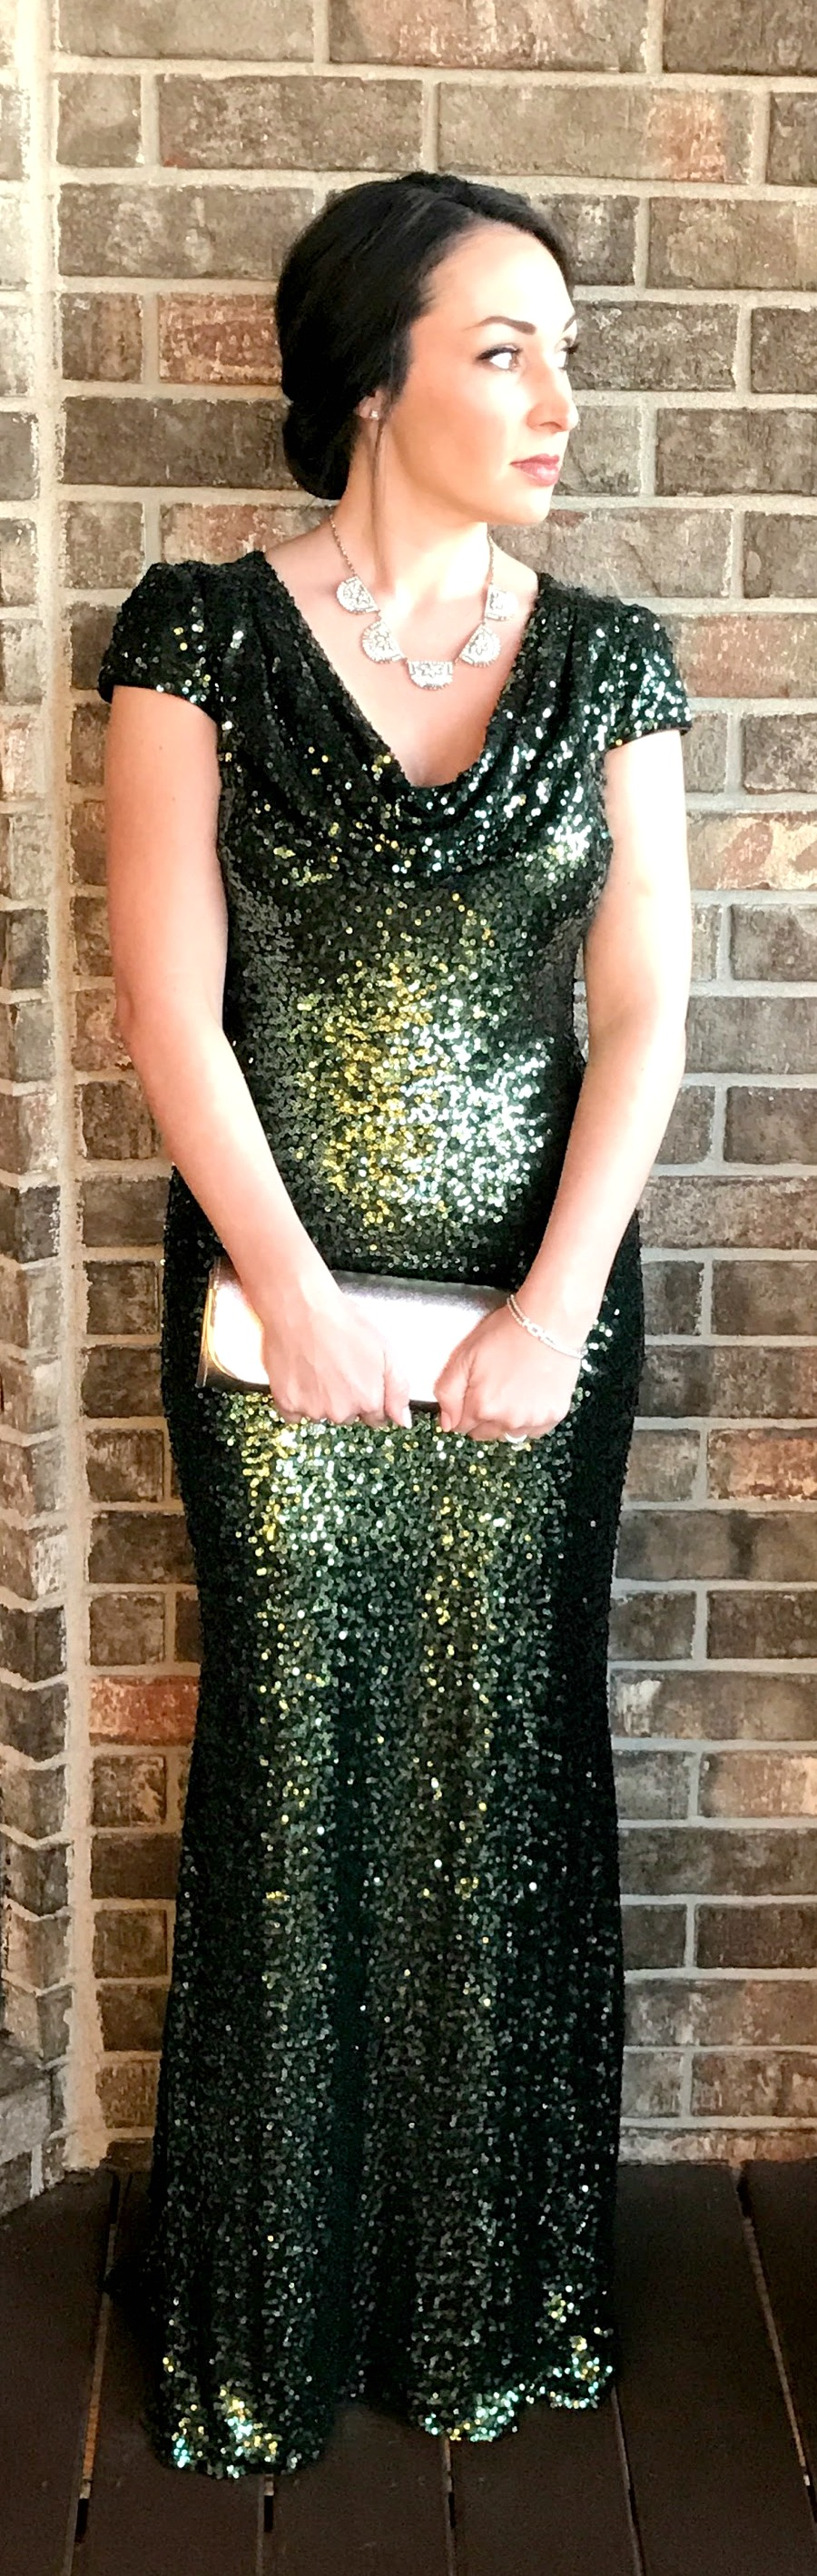 Rent the Runway Dress Review